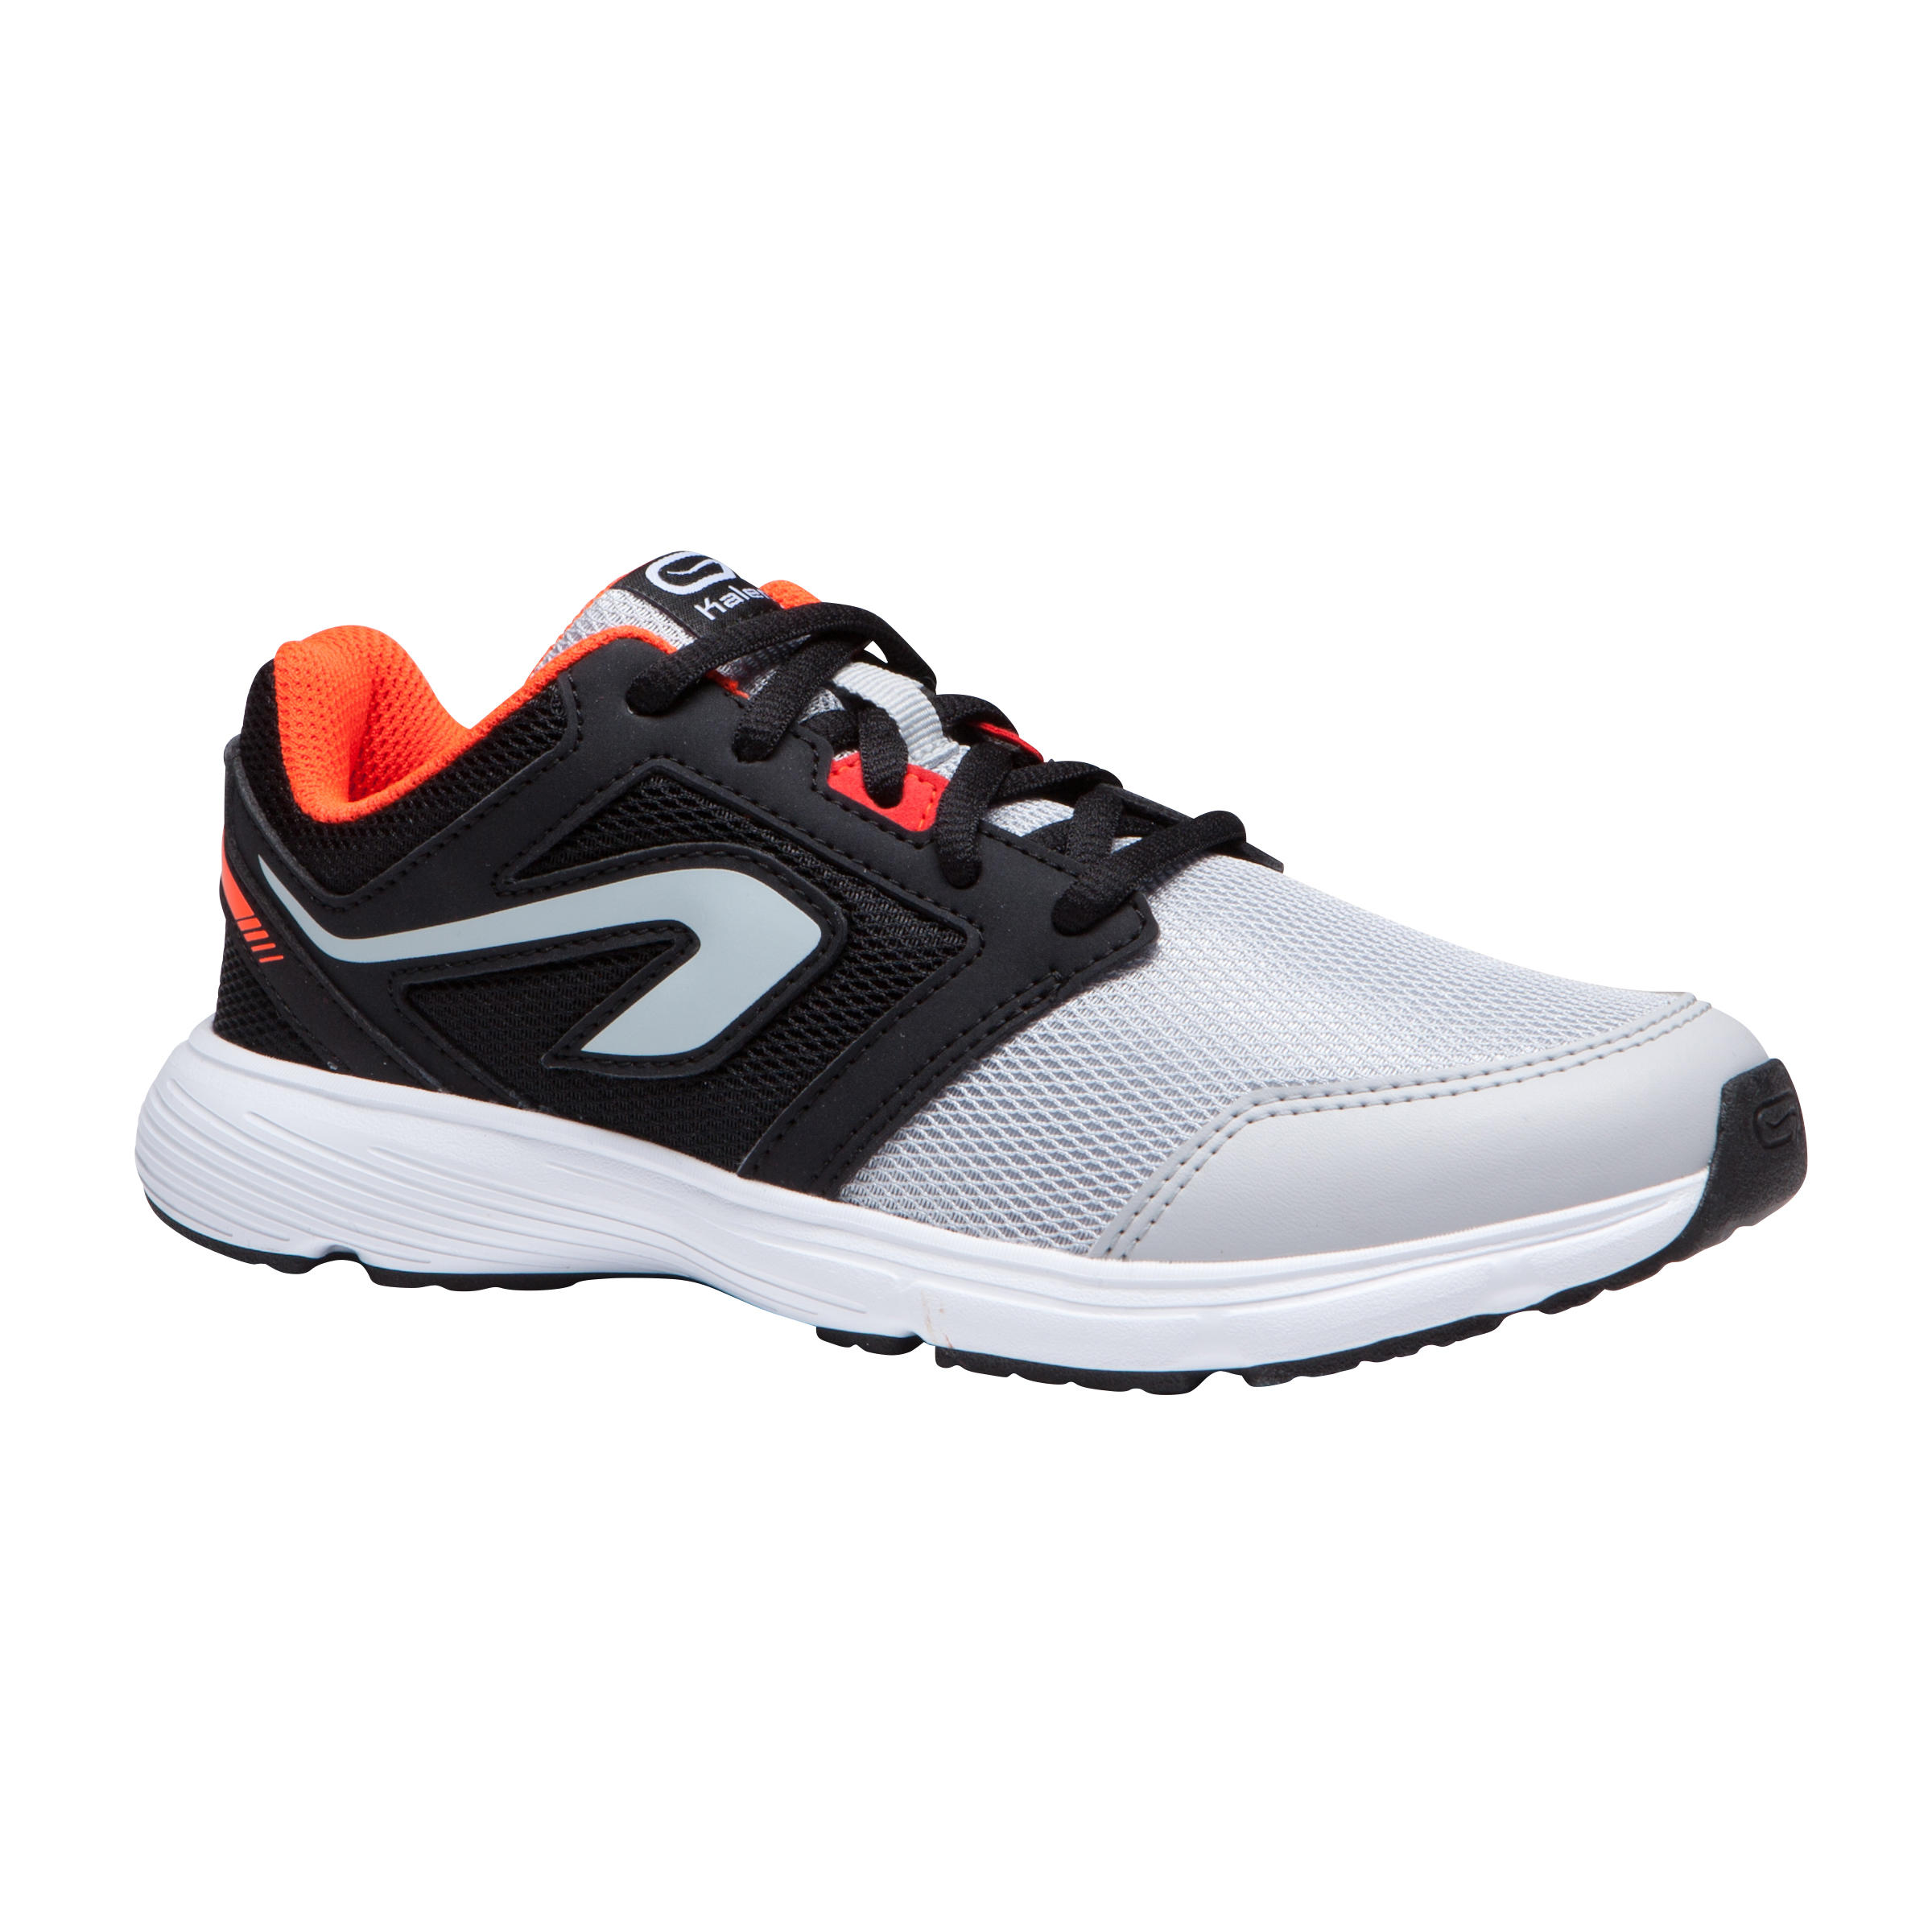 RUN SUPPORT LACES CHILDREN'S TRACK & FIELD SHOES - BLACK GREY RED